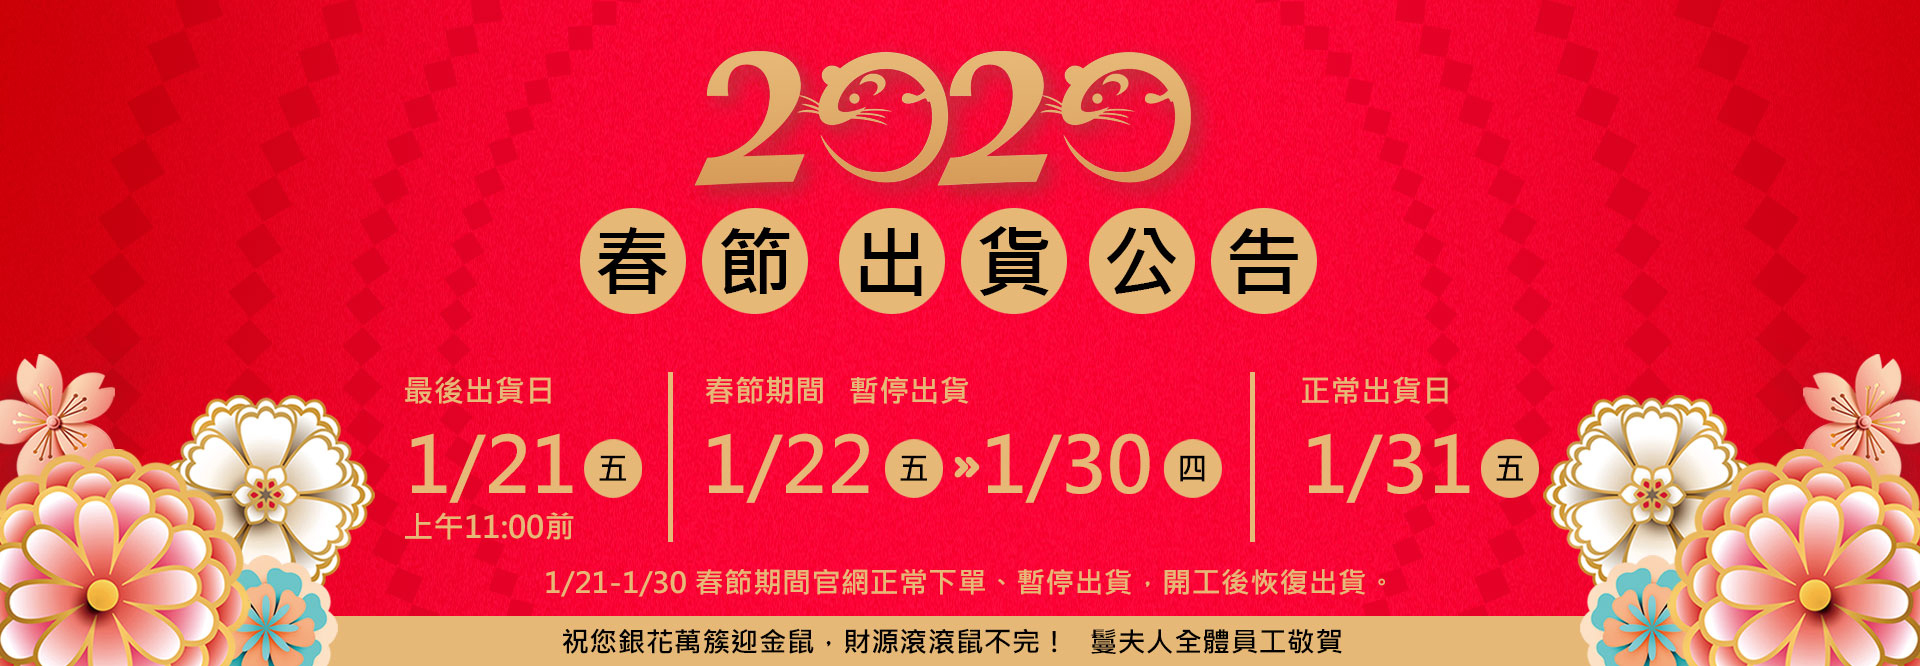 Stop Shipment(2020 Chinese New Year holidays)